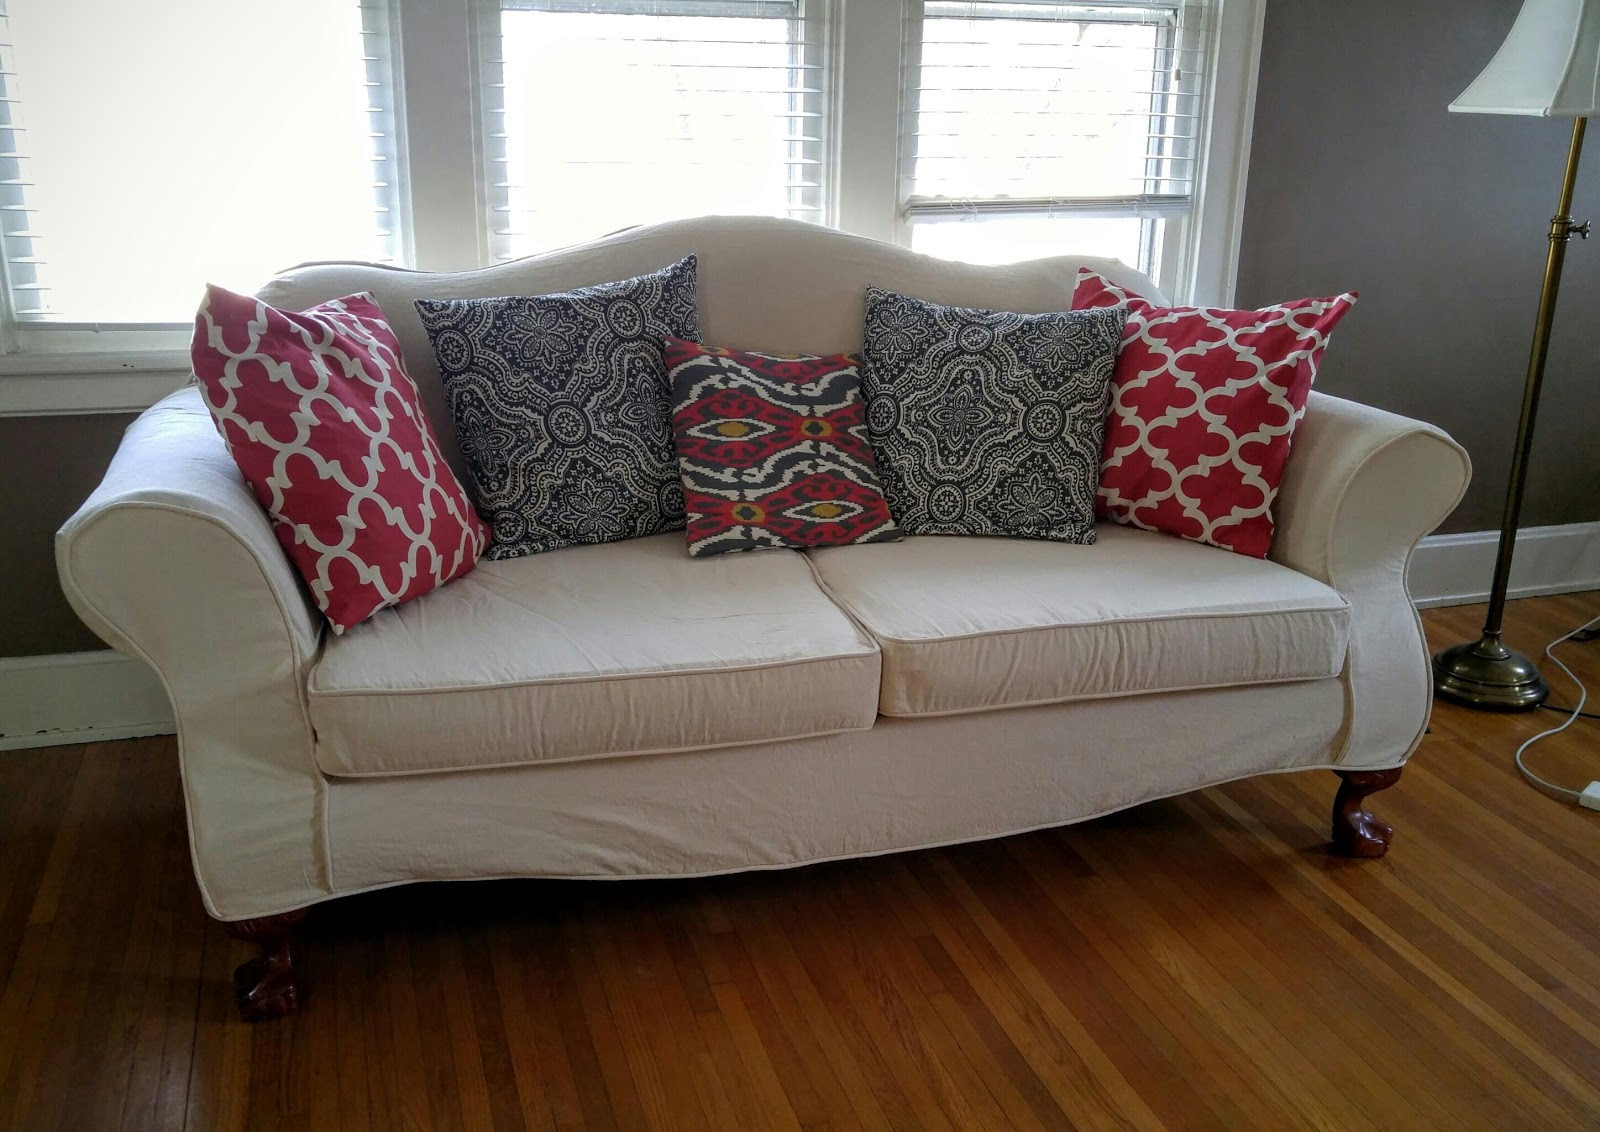 camelback sofa cover spray paint leather slipcovers 3 cushion pictures to pin on